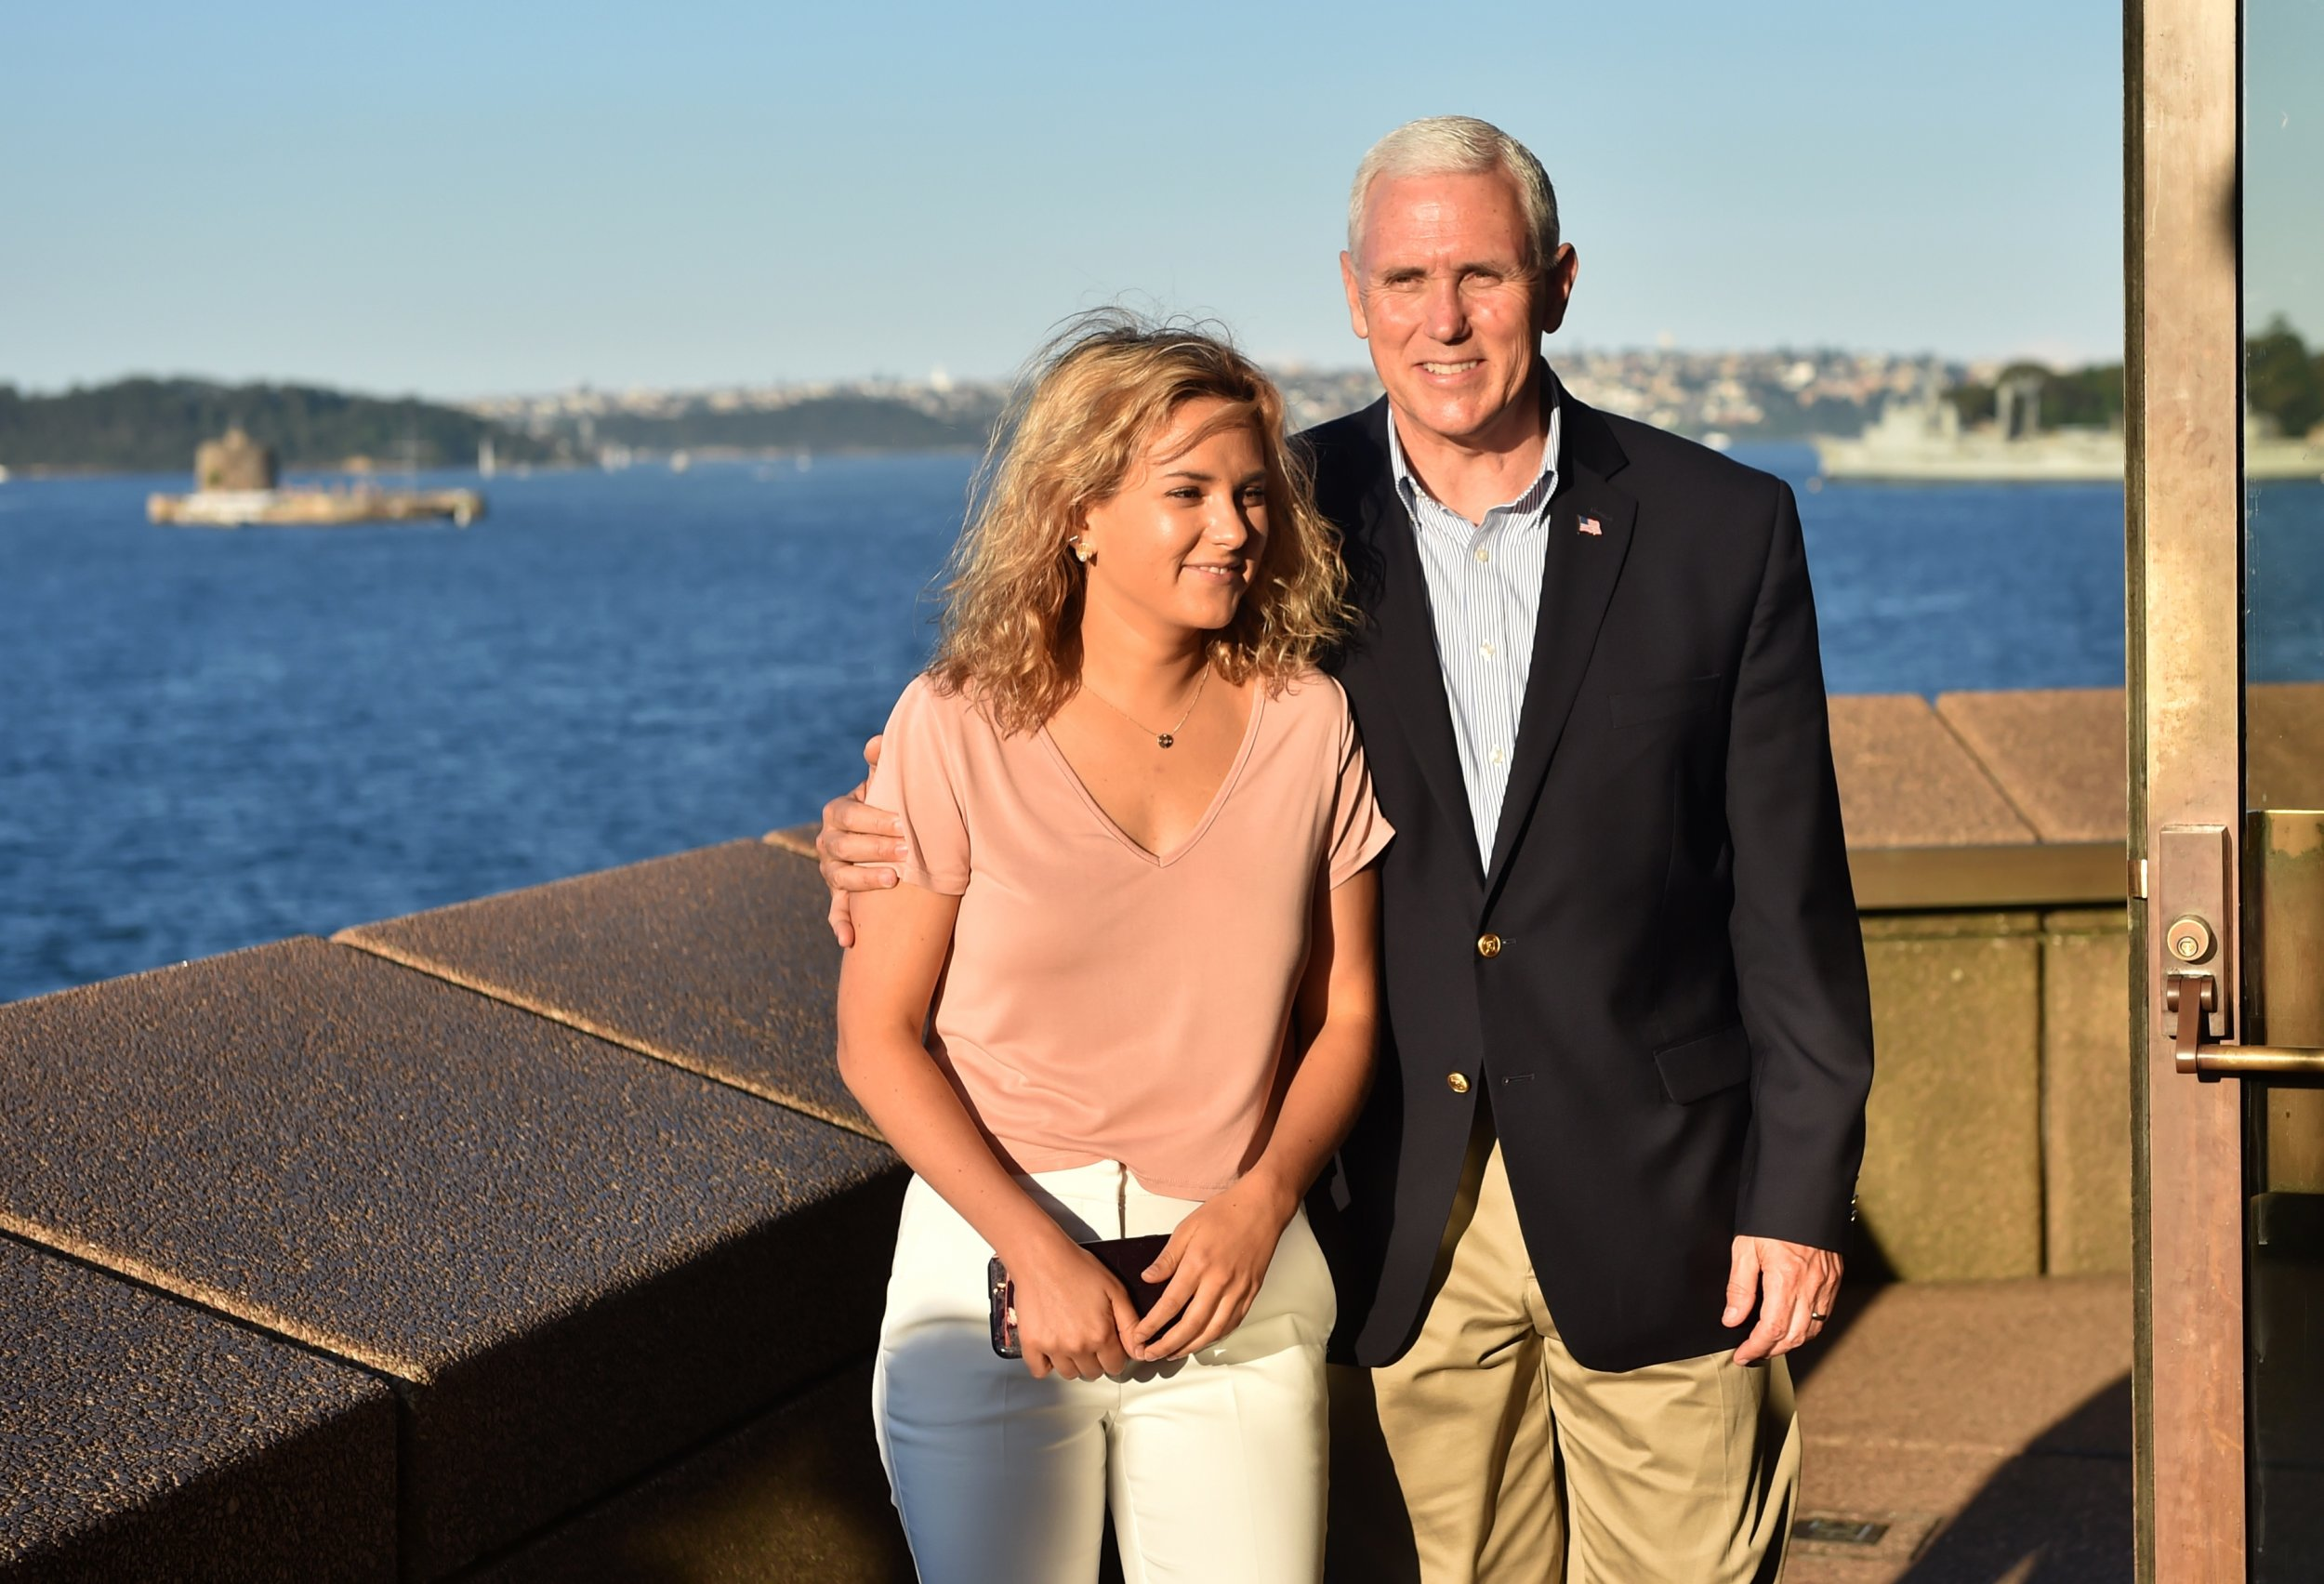 Vice President S Daughter Charlotte Pence Bought John